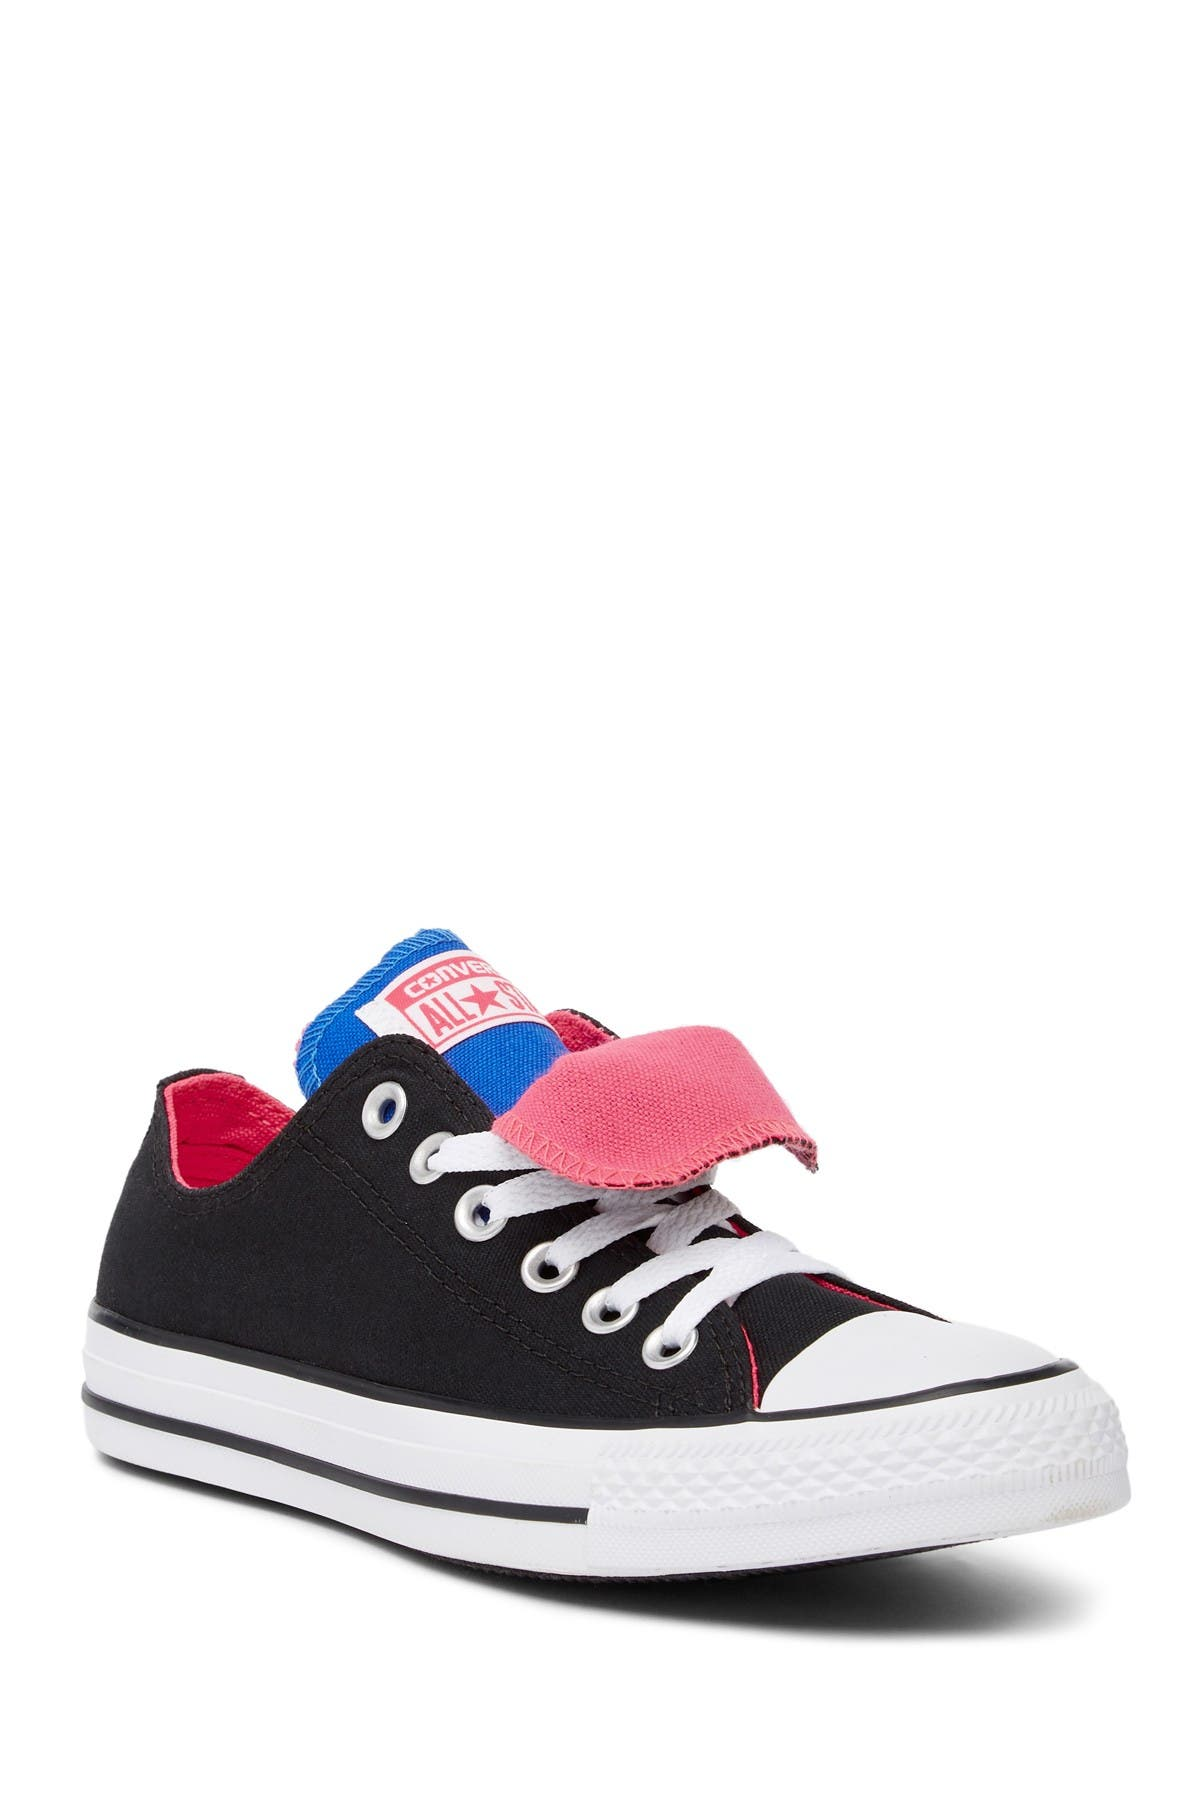 Image of Converse Chuck Taylor All Star Double Tongue Low Top Sneaker